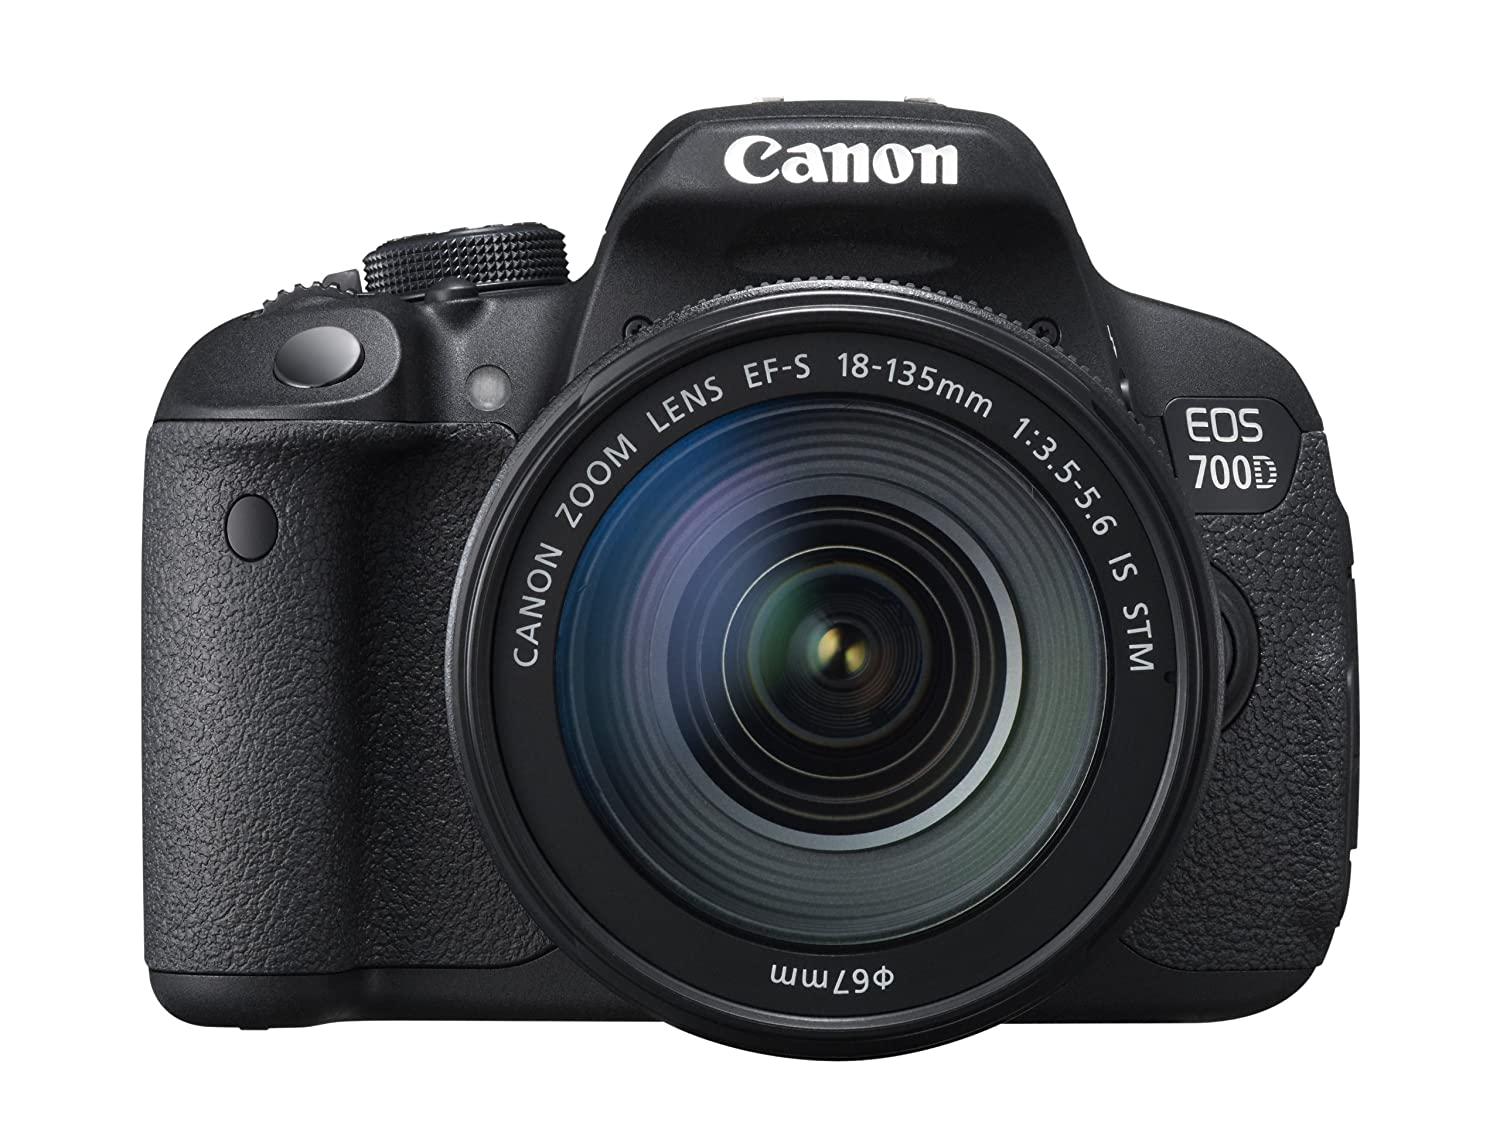 Canon EOS 700D Digital SLR Camera 18MP FULL HD + EF-S 18-135mm IS STM